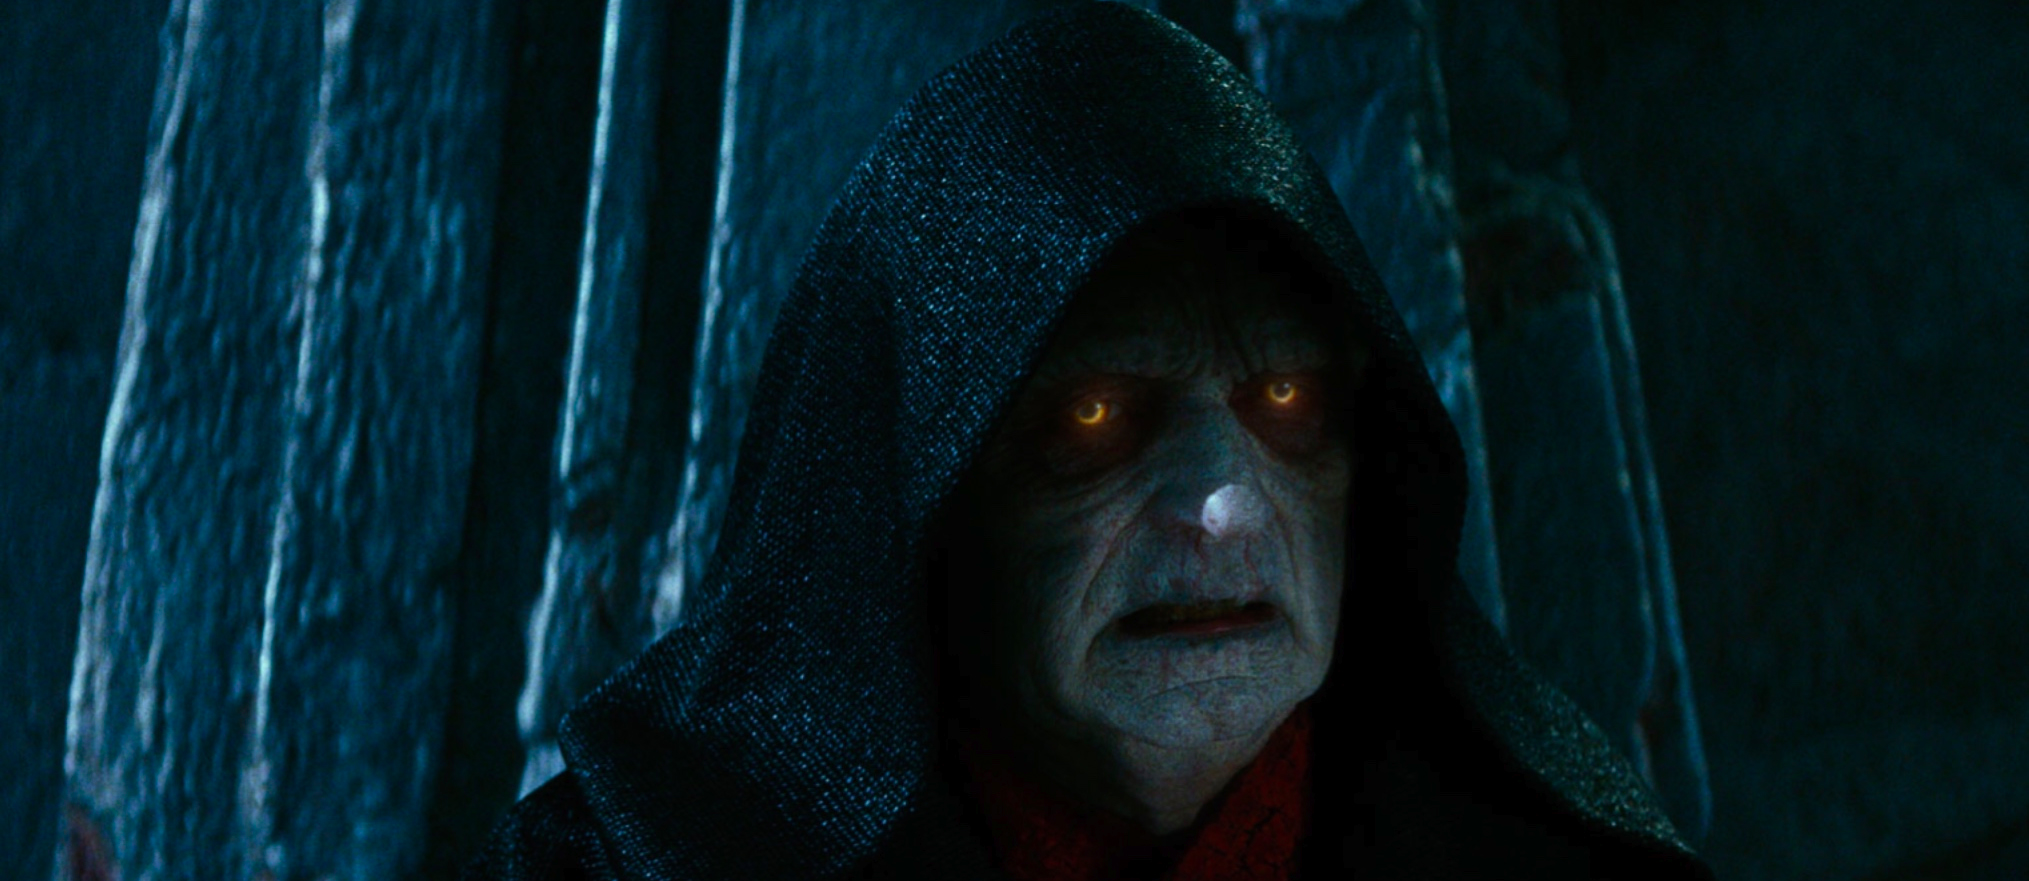 Emperor Palpatine is a Clone in Star Wars: The Rise of Skywalker /Film